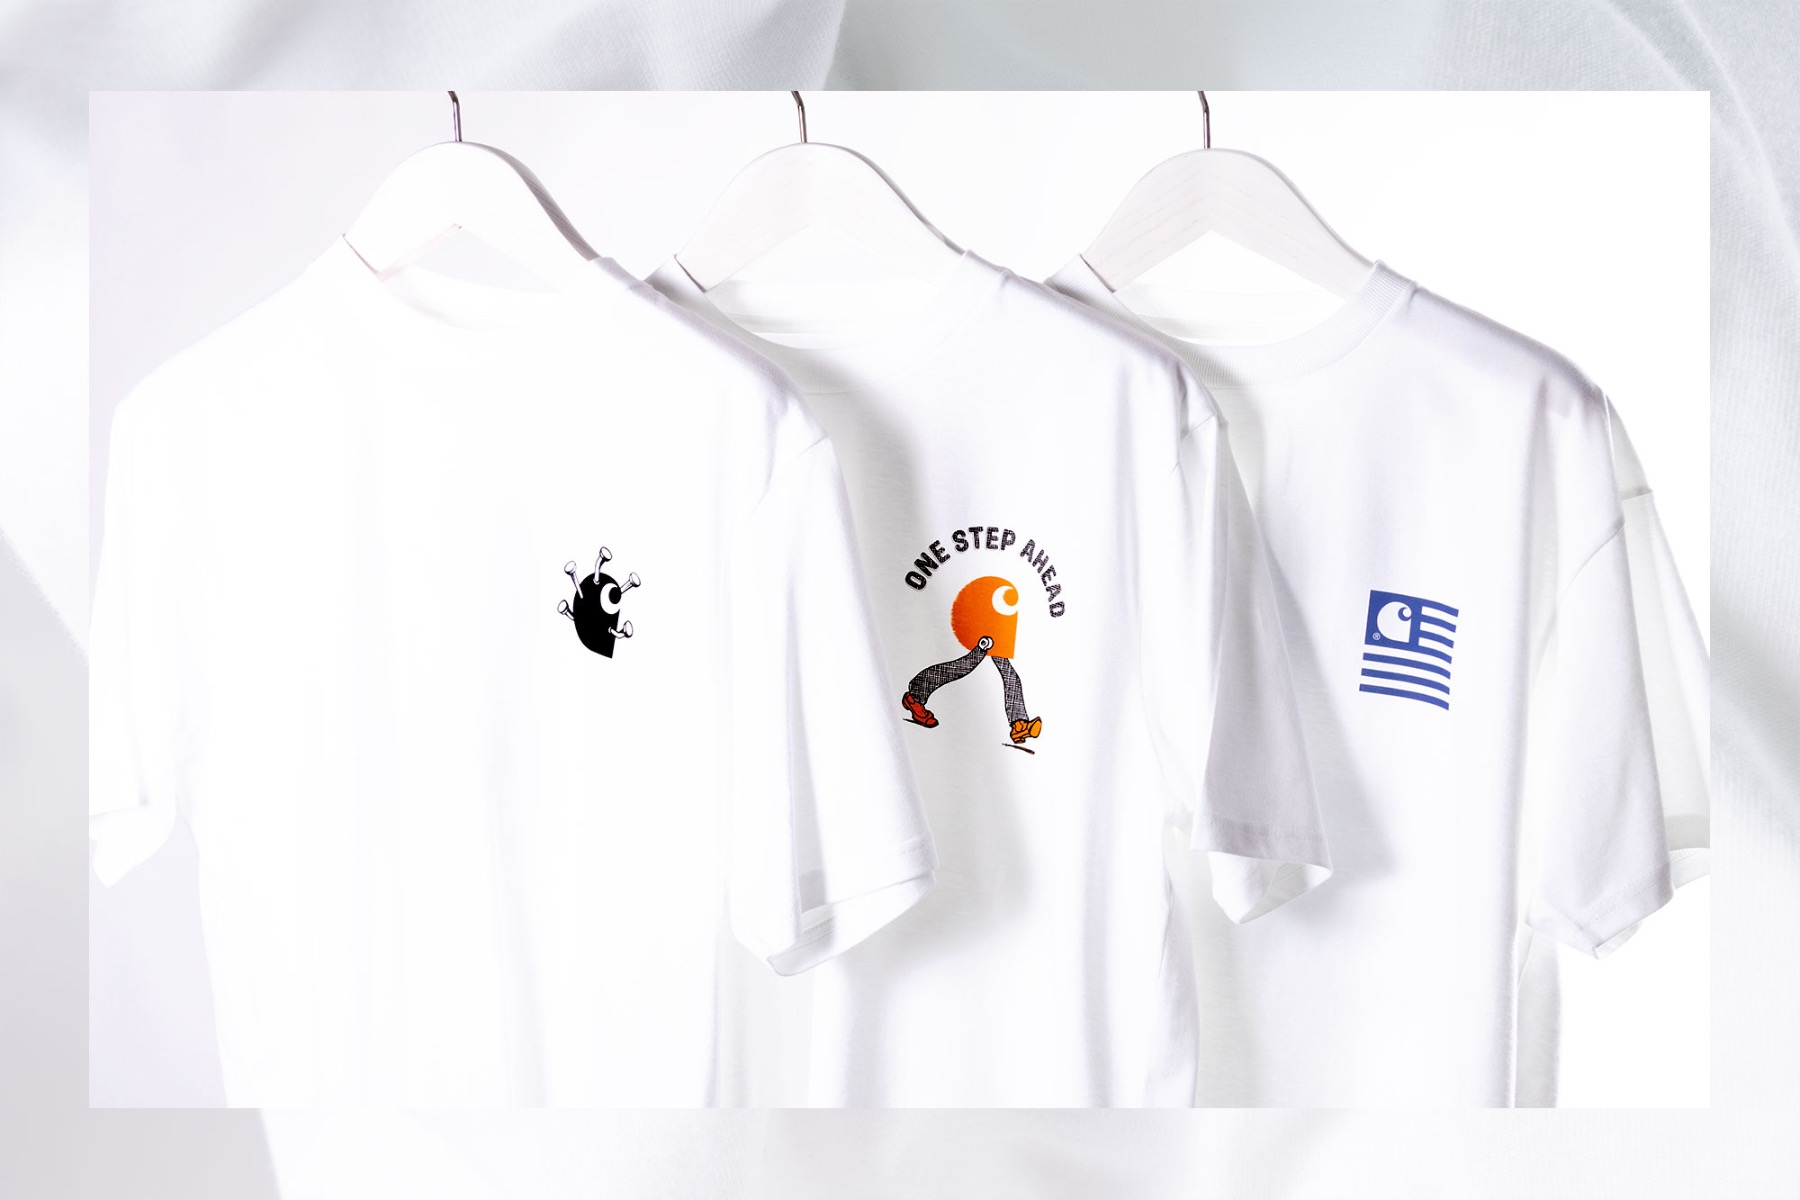 carhartt wip AW20 graphic t-shirts